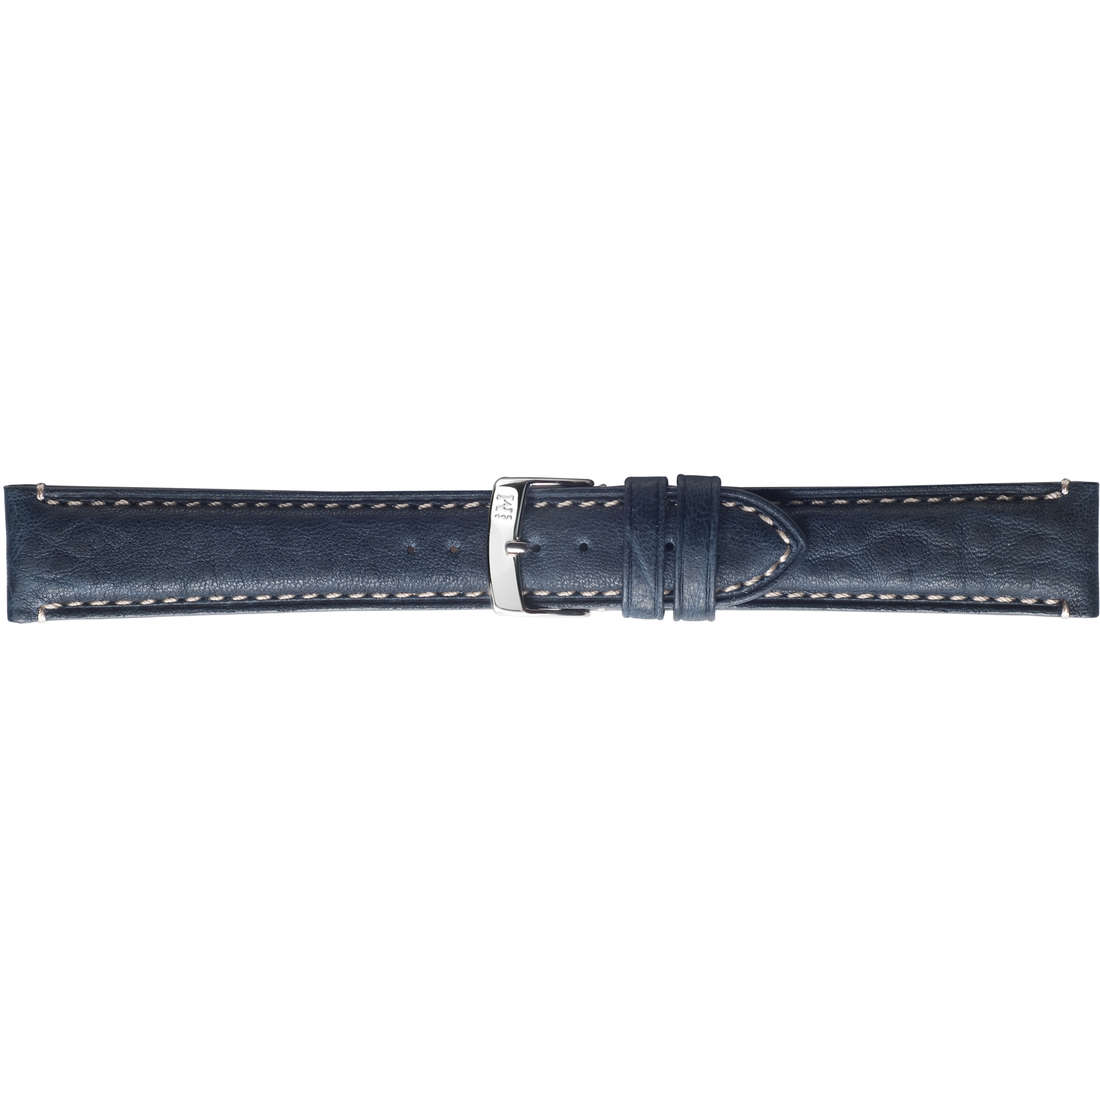 watch watch bands watch straps man Morellato Manufatti A01U4124A81062CR18